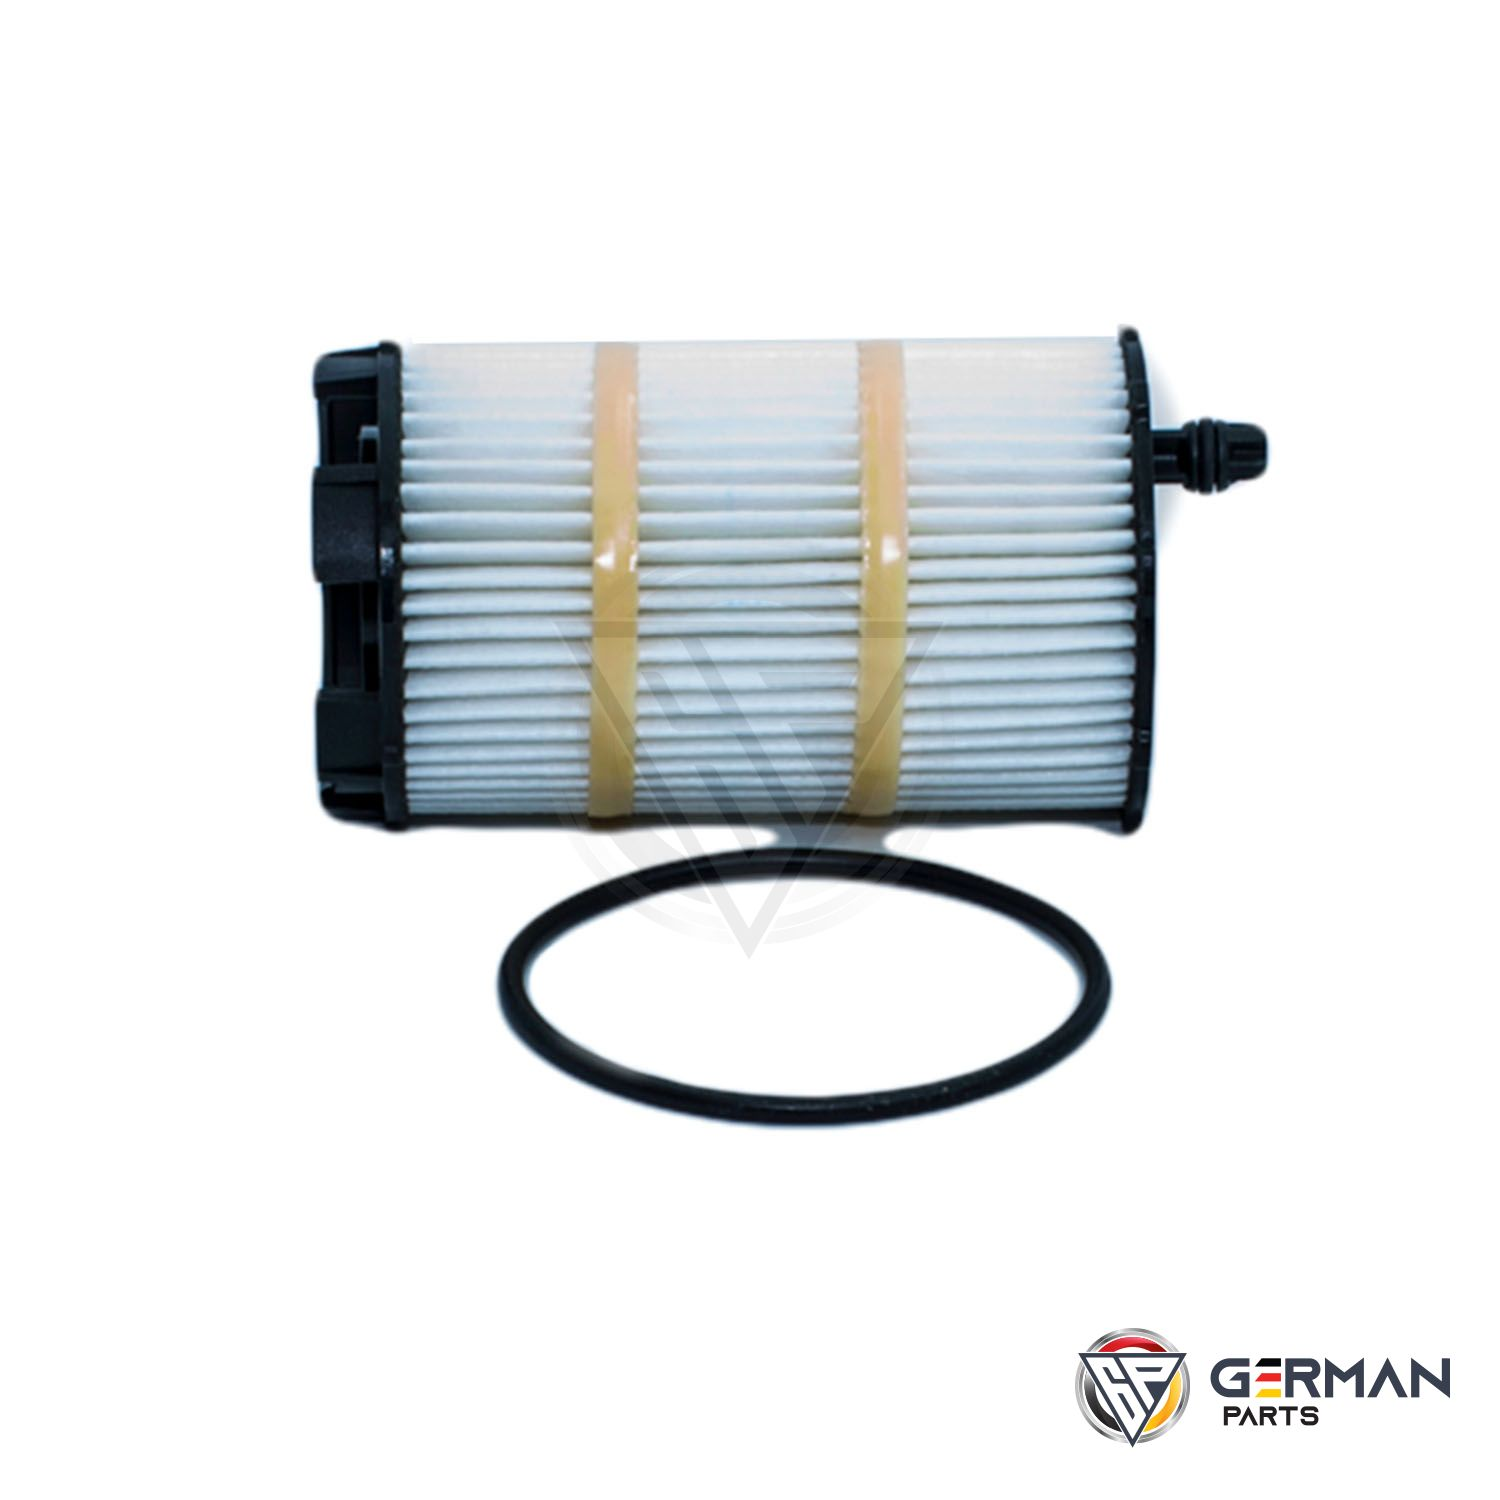 Buy Genuine Audi/Volkswagen Oil Filter 079198405E - German Parts